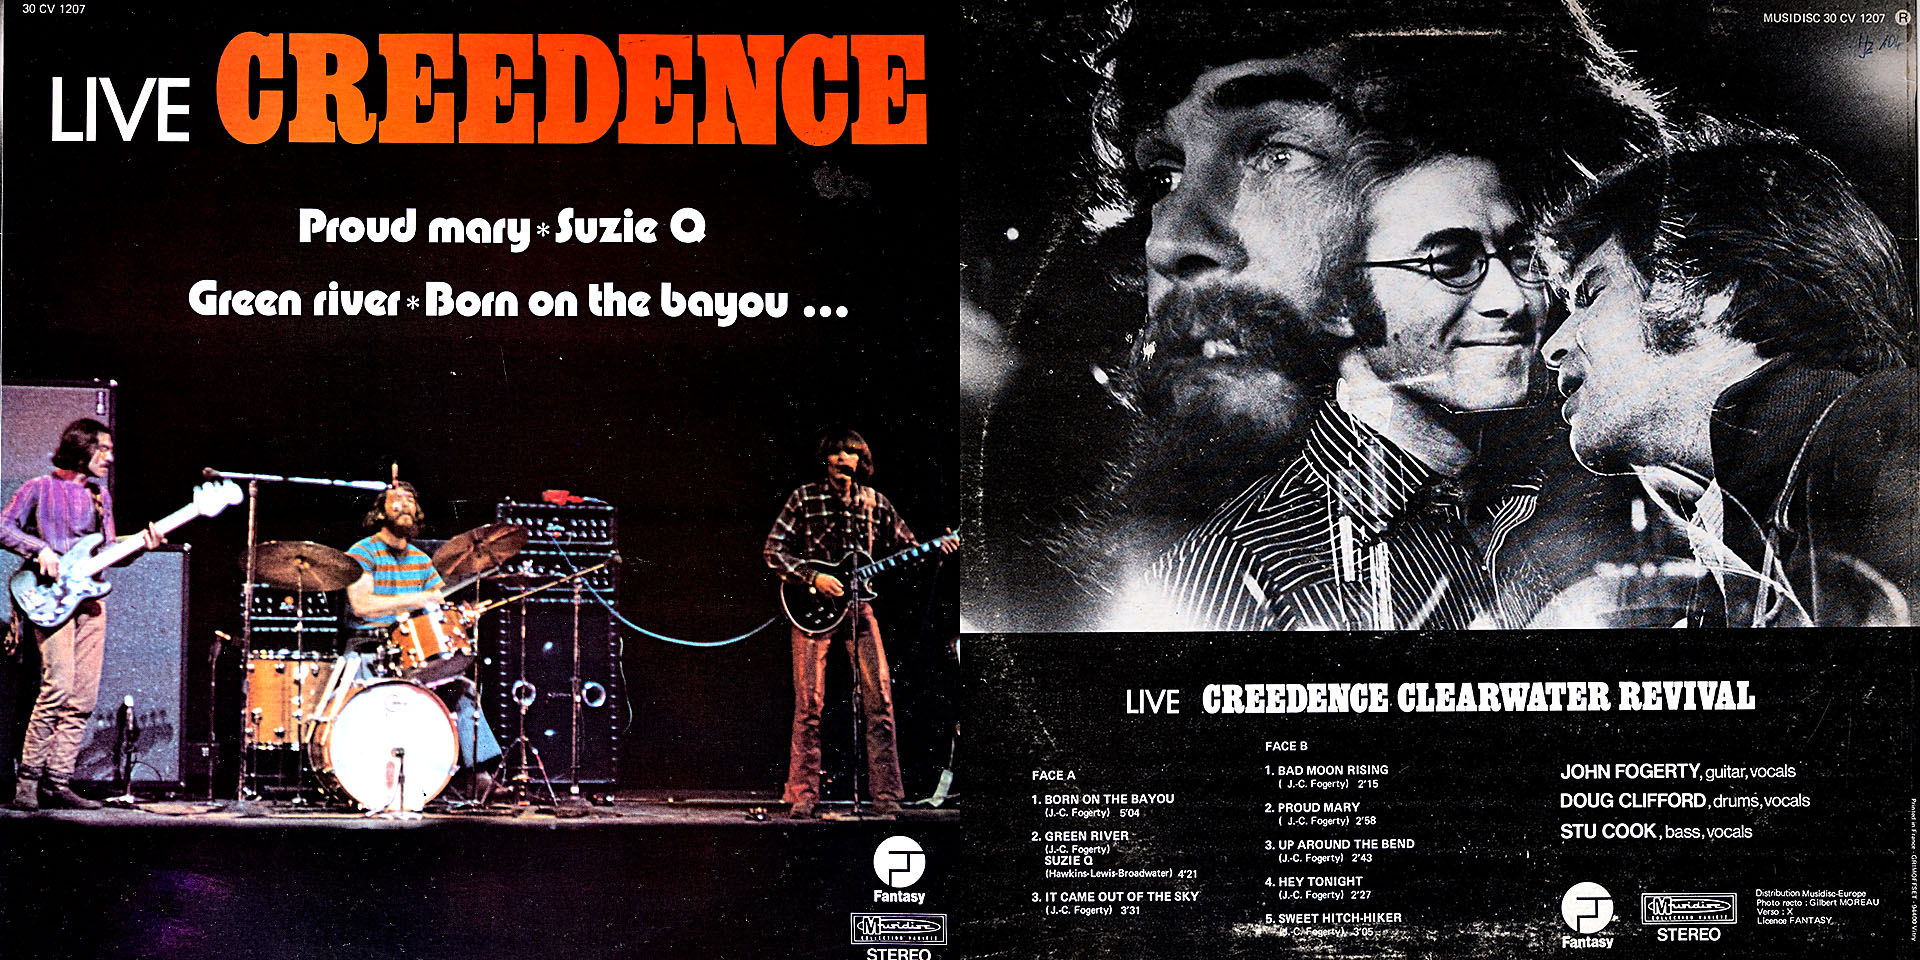 LIVE CREEDENCE - Creedence Clearwater Recival